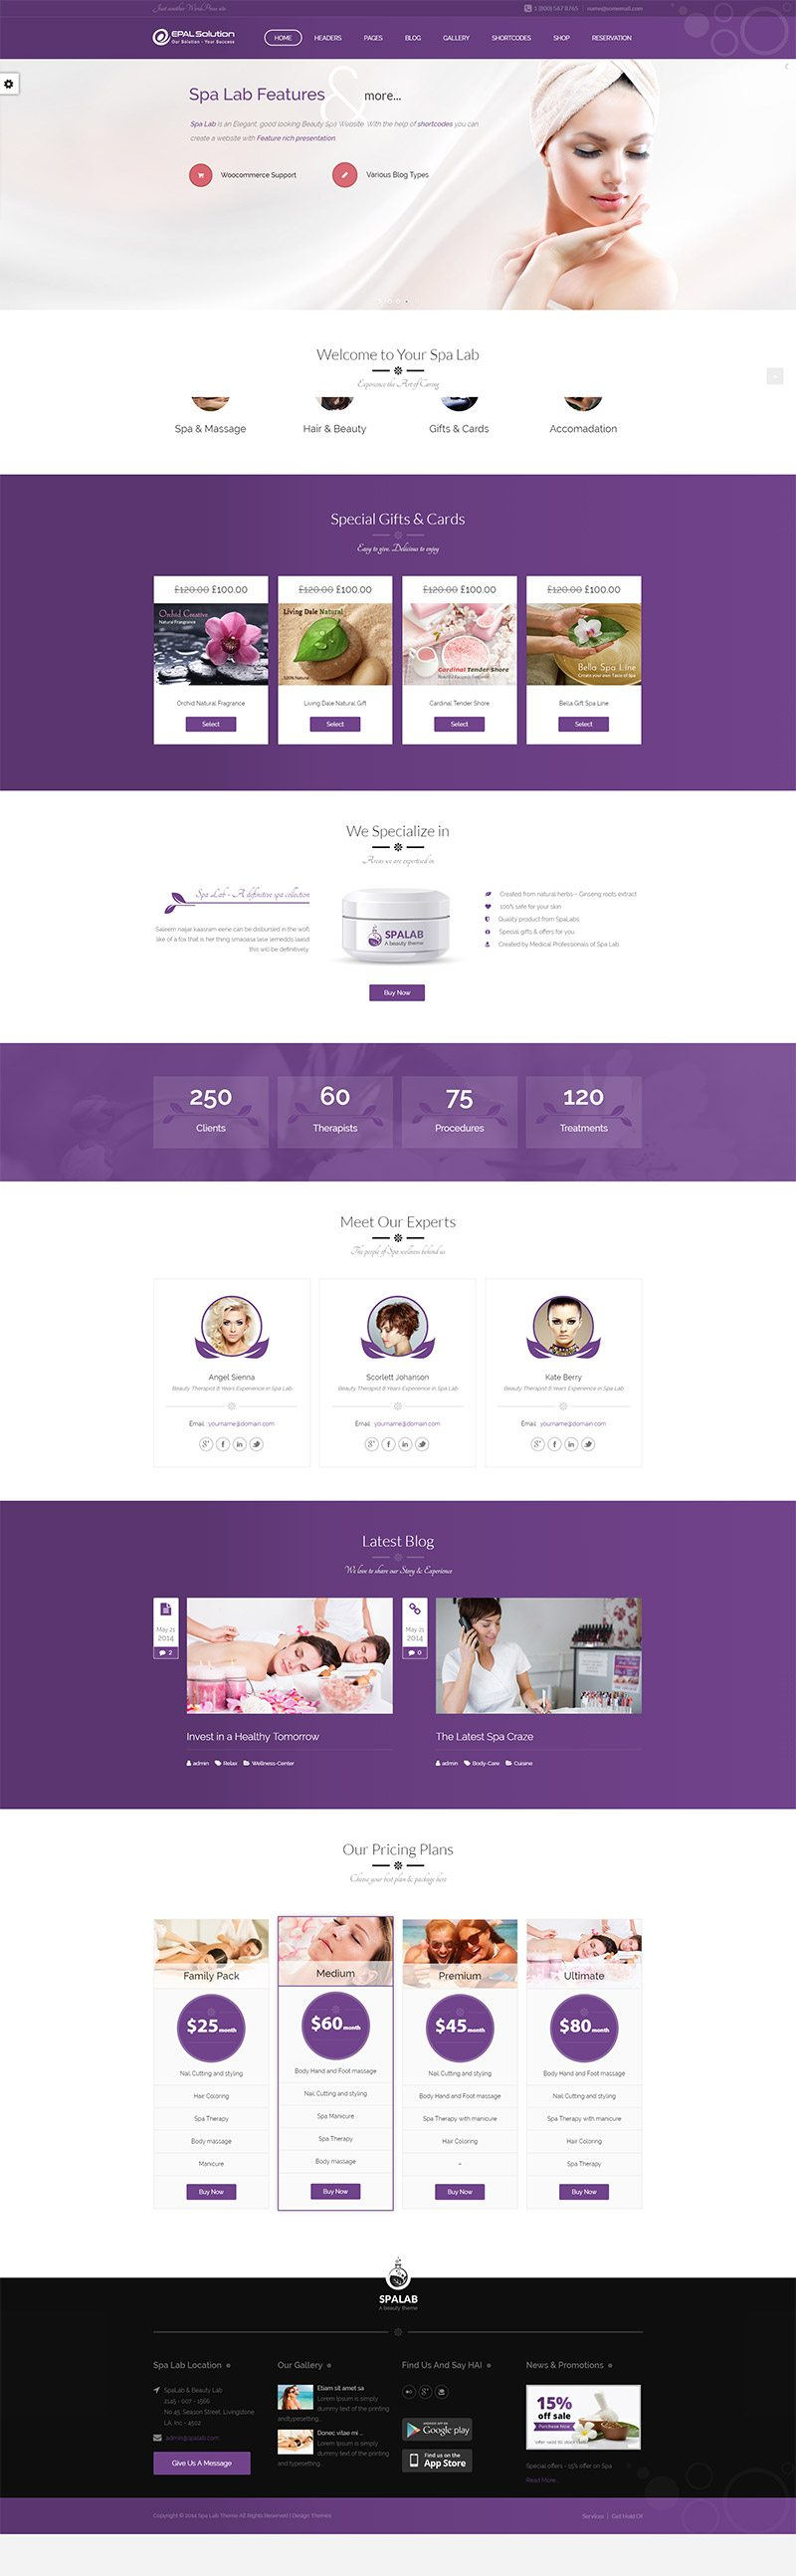 Giao-dien-website-spa-lab